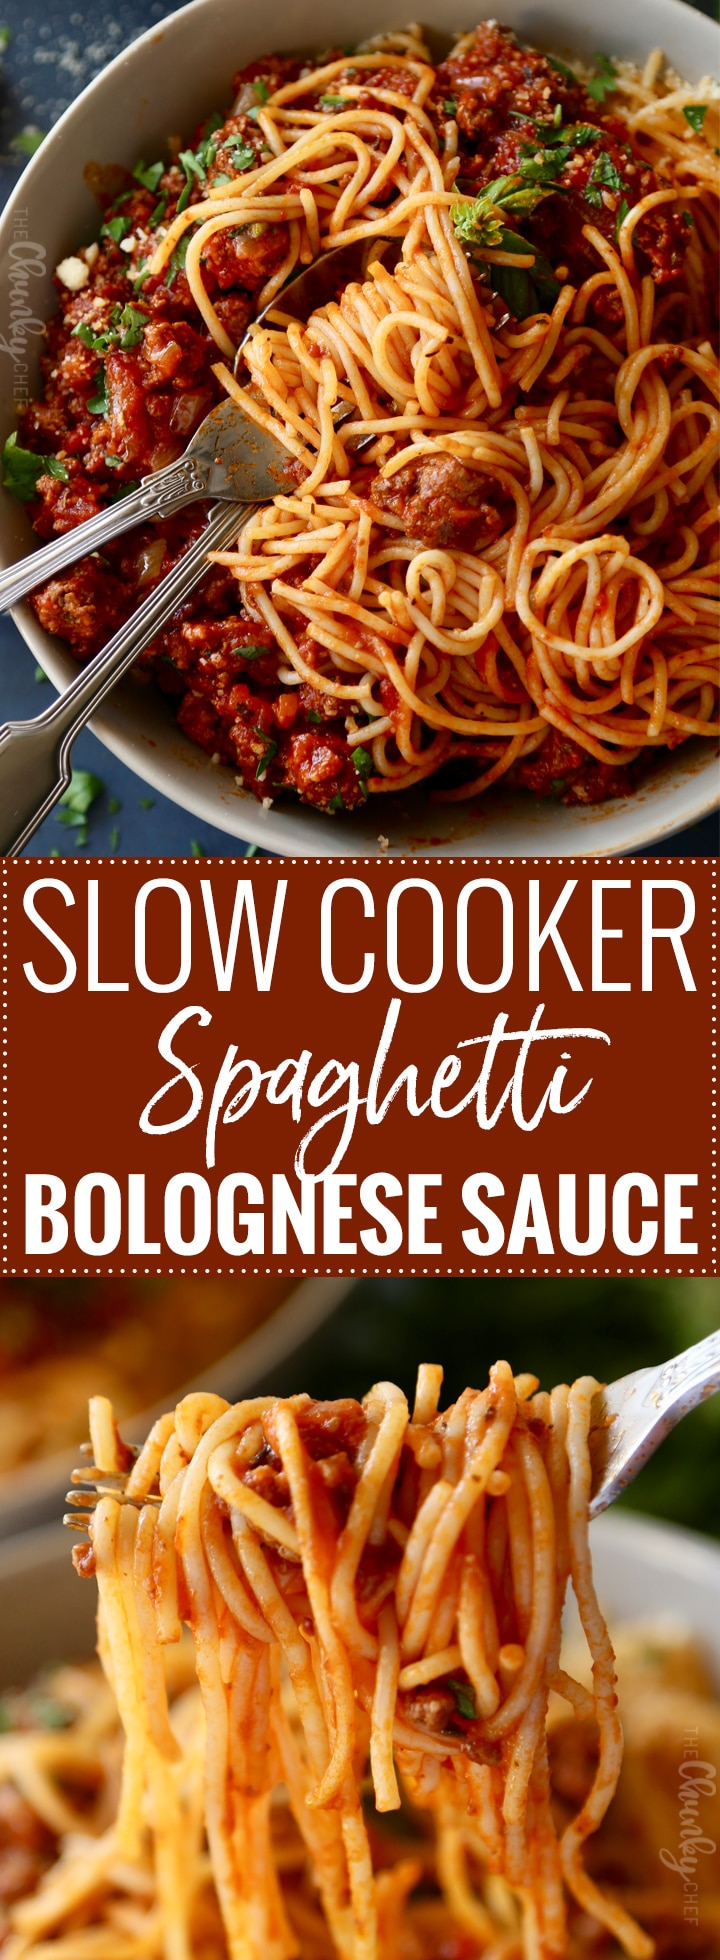 Slow Cooker Spaghetti Bolognese Sauce | Perfect for a weeknight dinner, this bolognese-style sauce is made in the slow cooker.  Just boil some pasta and your dinner is ready! | https://thechunkychef.com